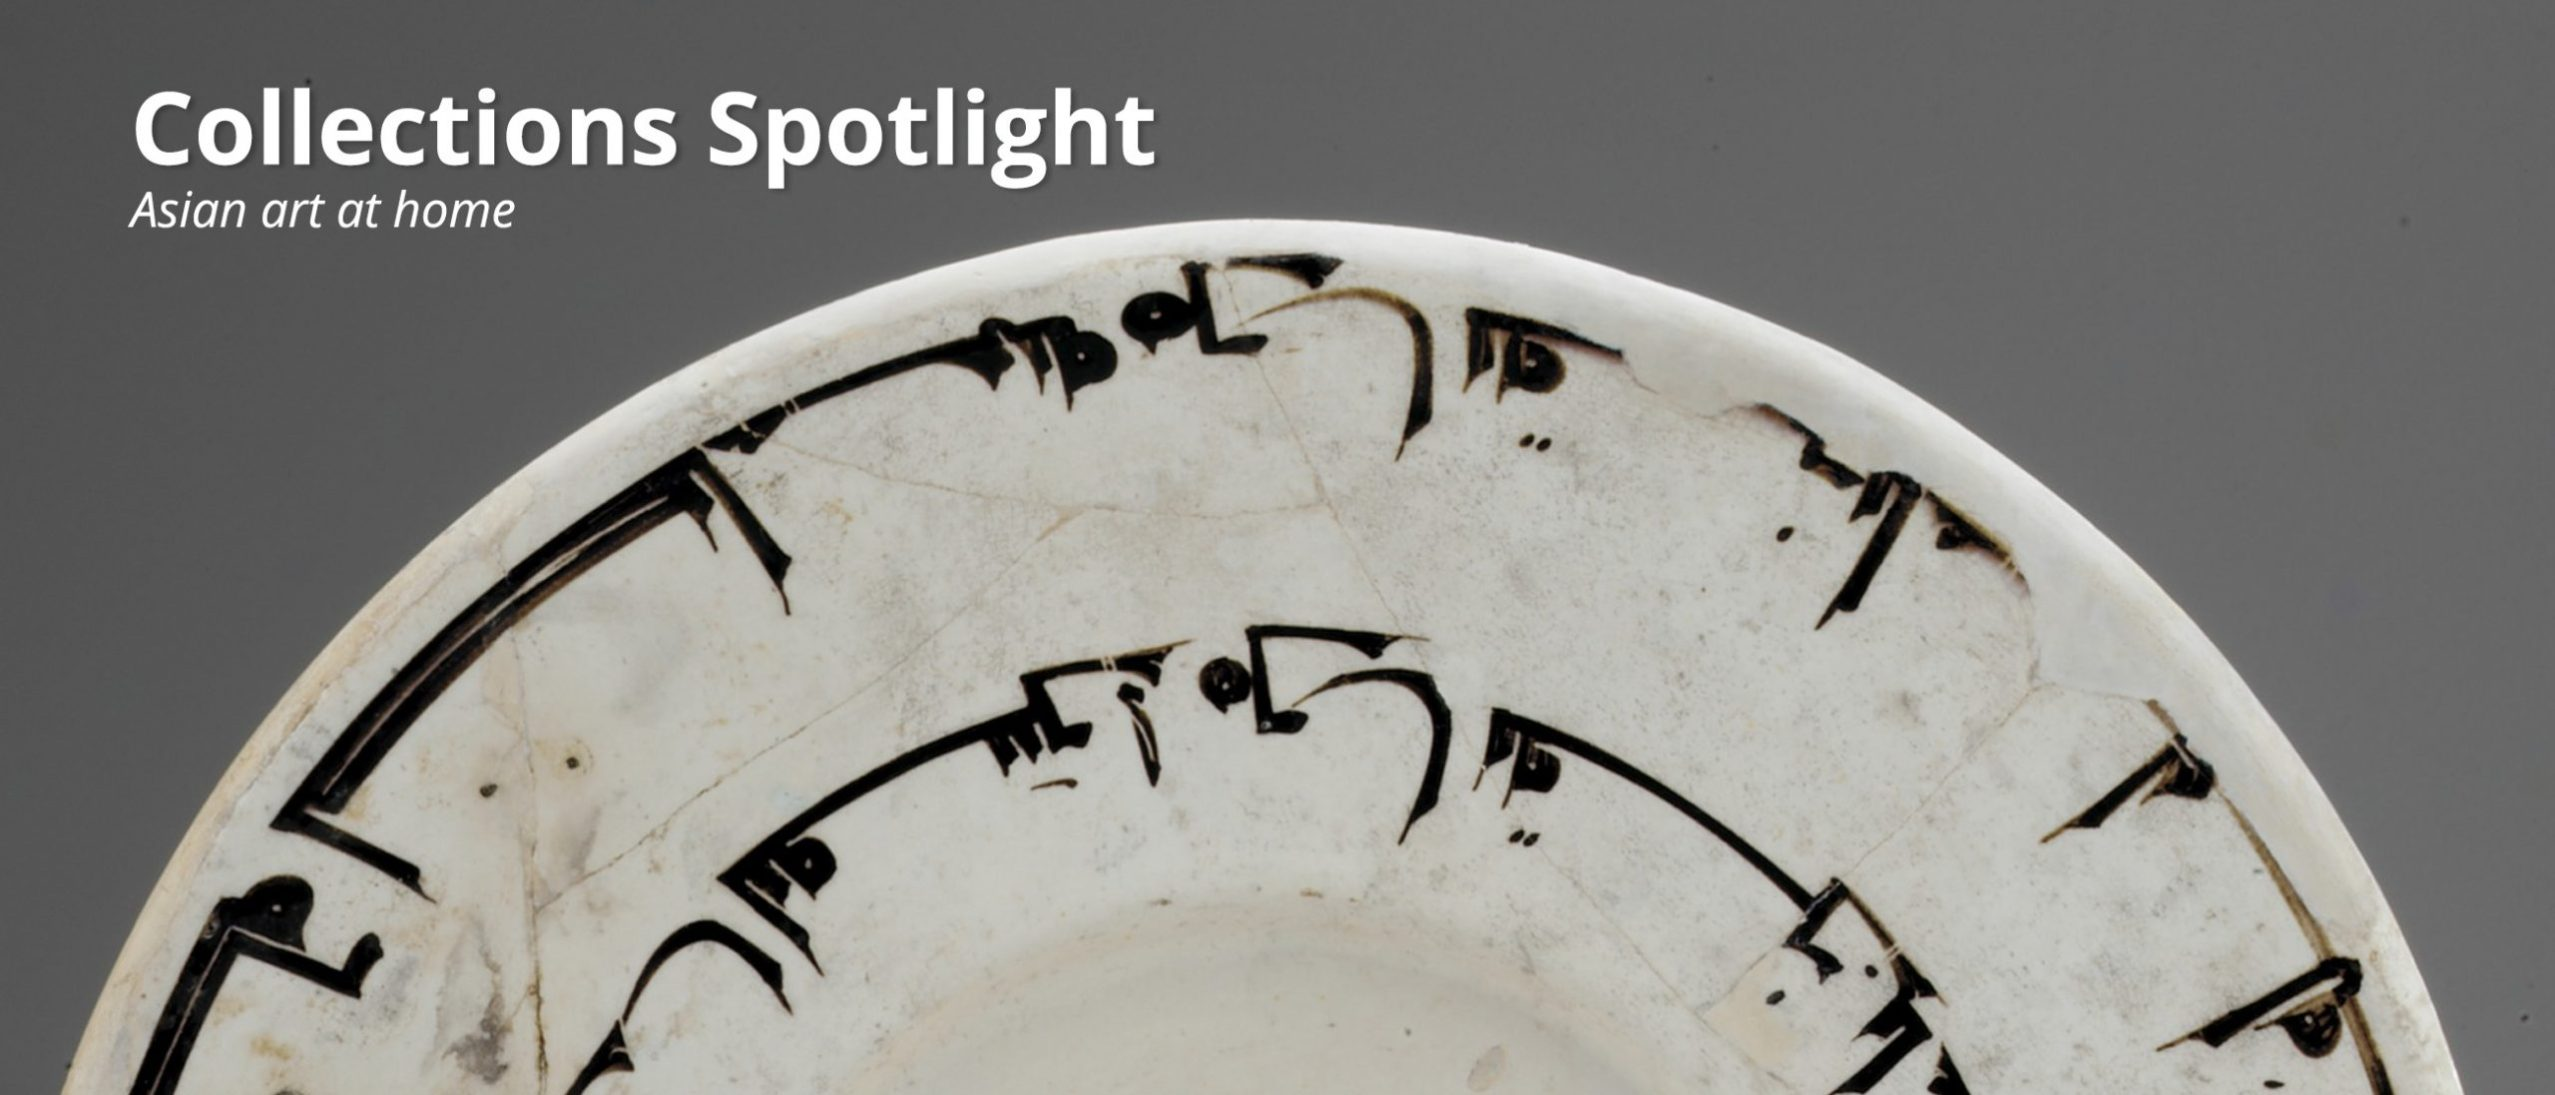 Collections spotlight: plate. Banner shows a detail of a white plate with black script around the edges.